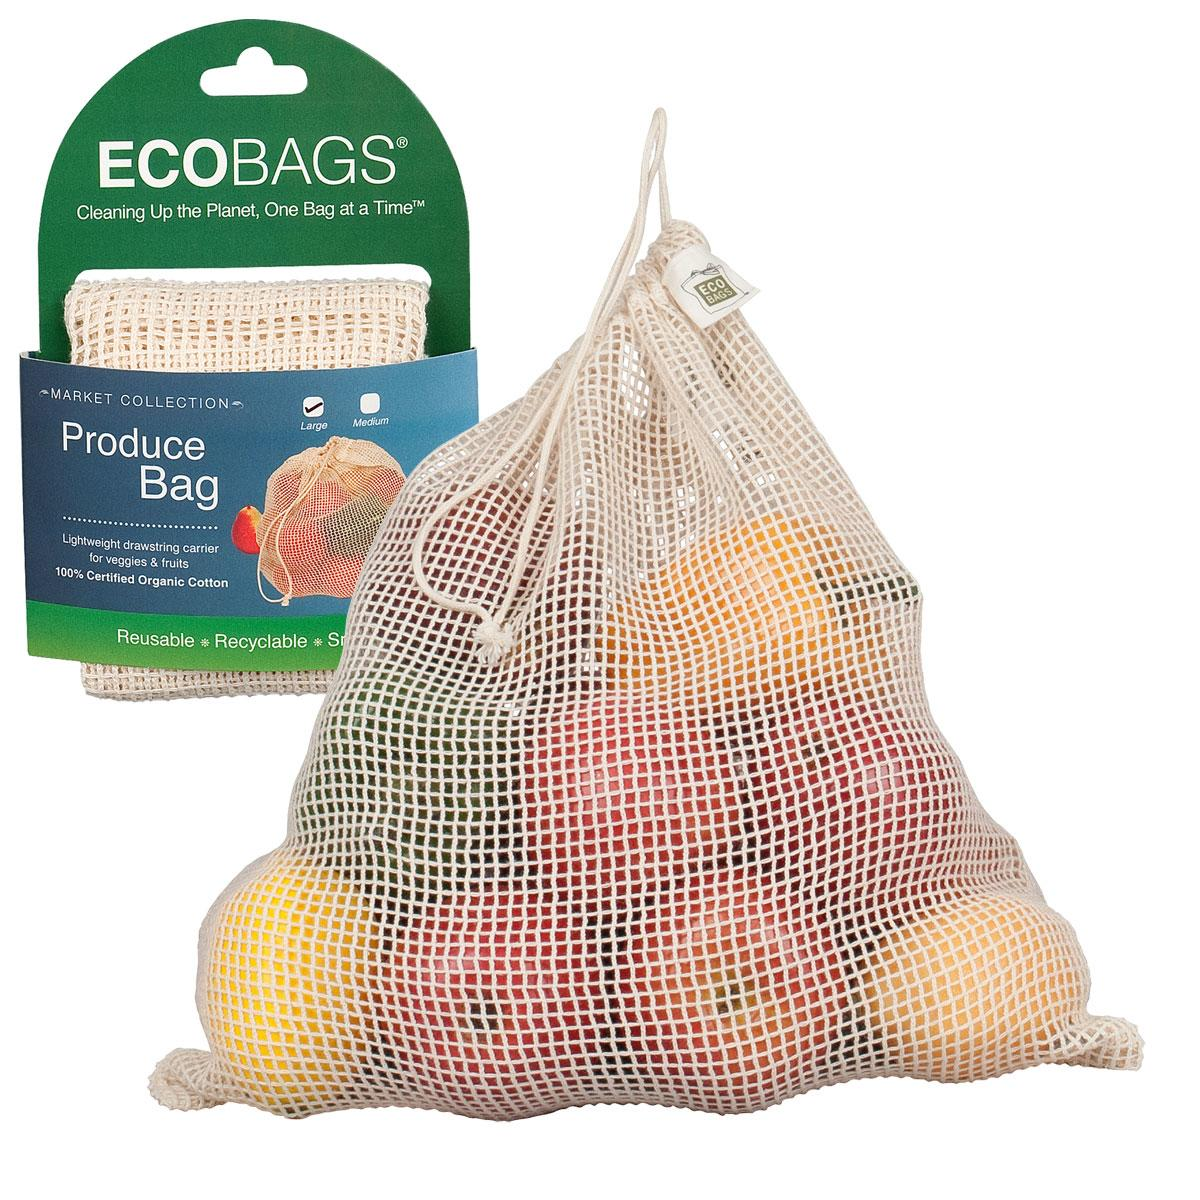 ECOBAGS Organic Cotton Net Grocery Bag - Large